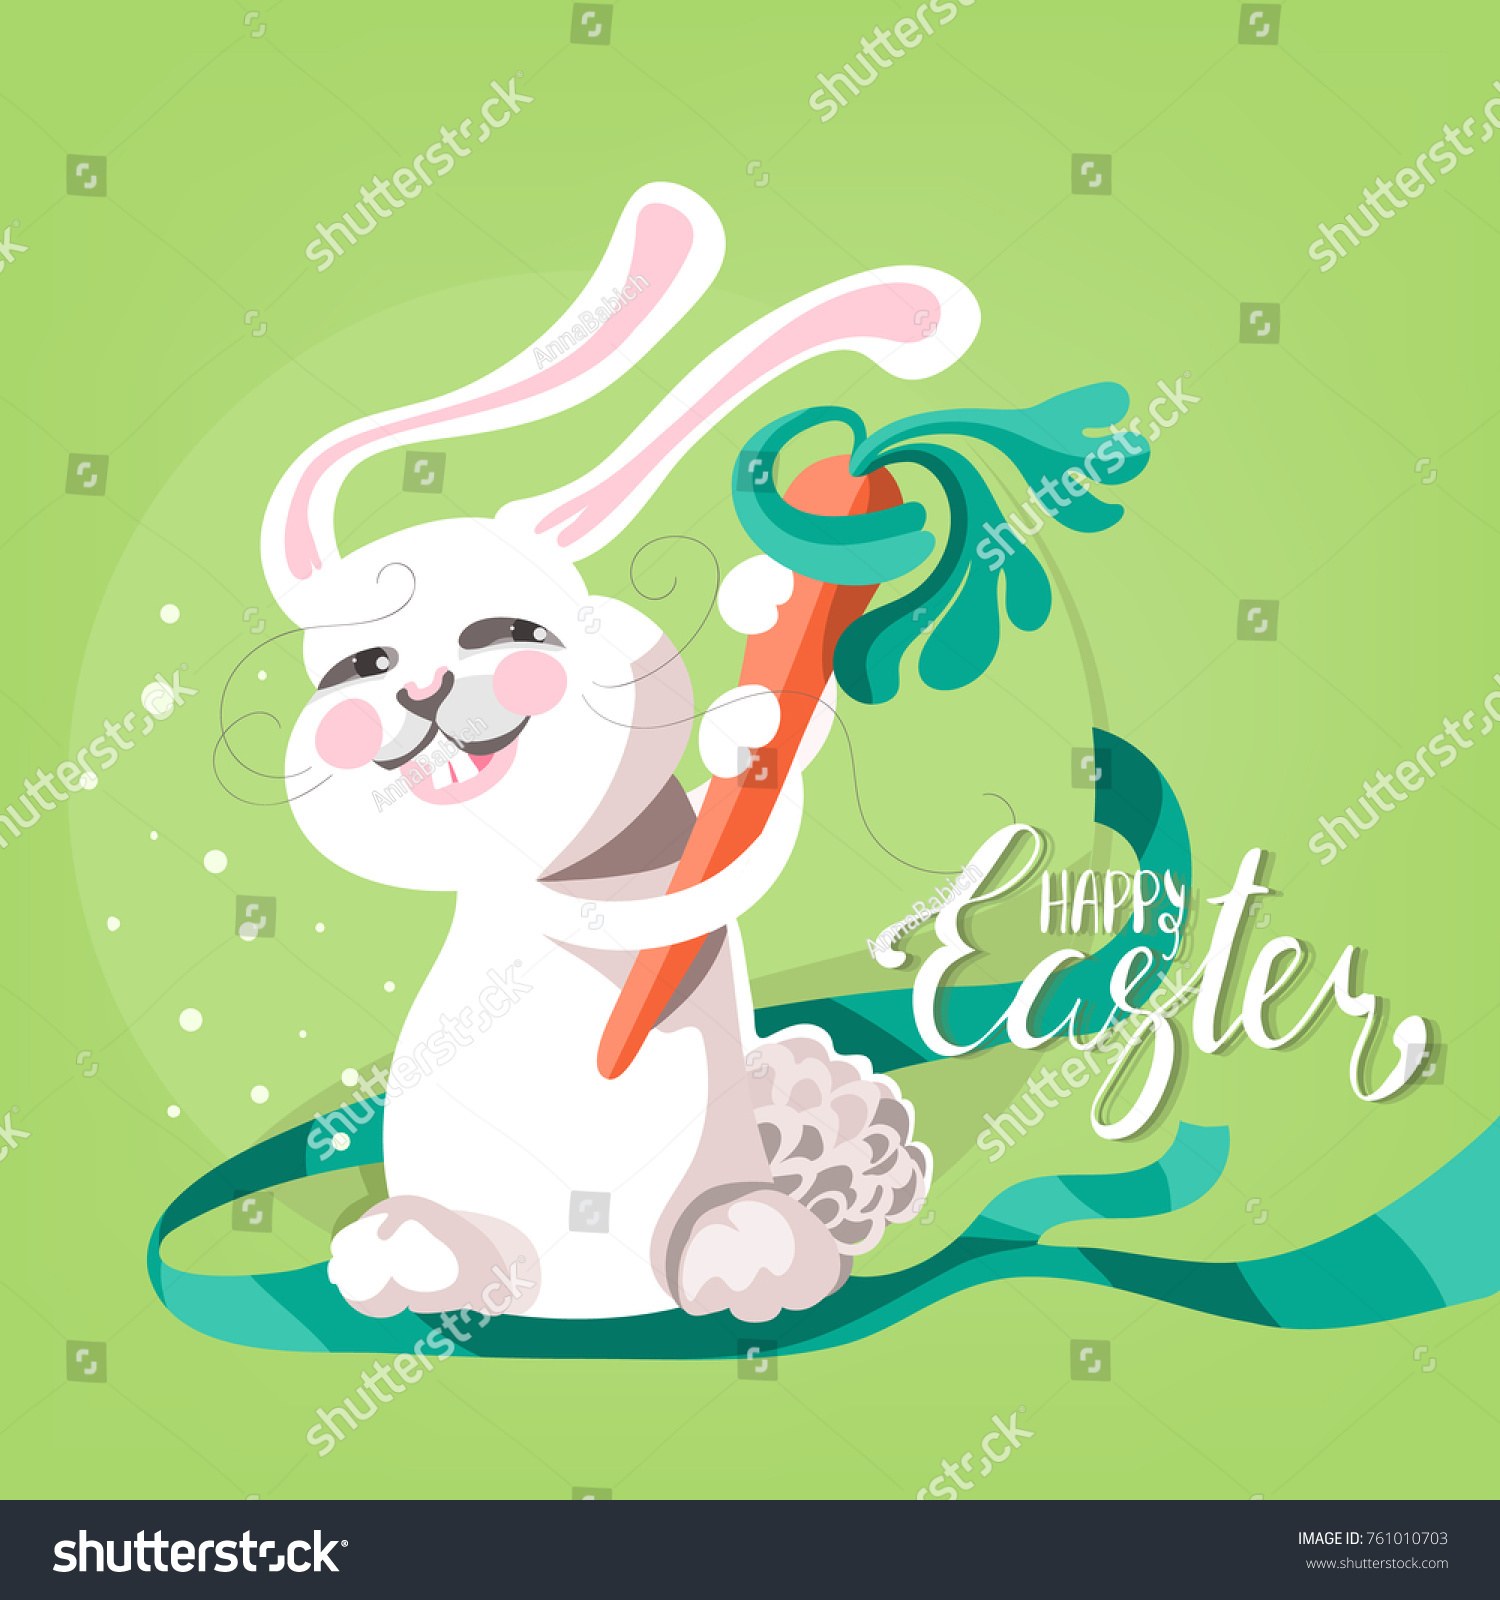 Cute funny happy easter greeting card stock vector 761010703 cute and funny happy easter greeting card adorable cheerful cartoon white bunny rabbot kristyandbryce Choice Image